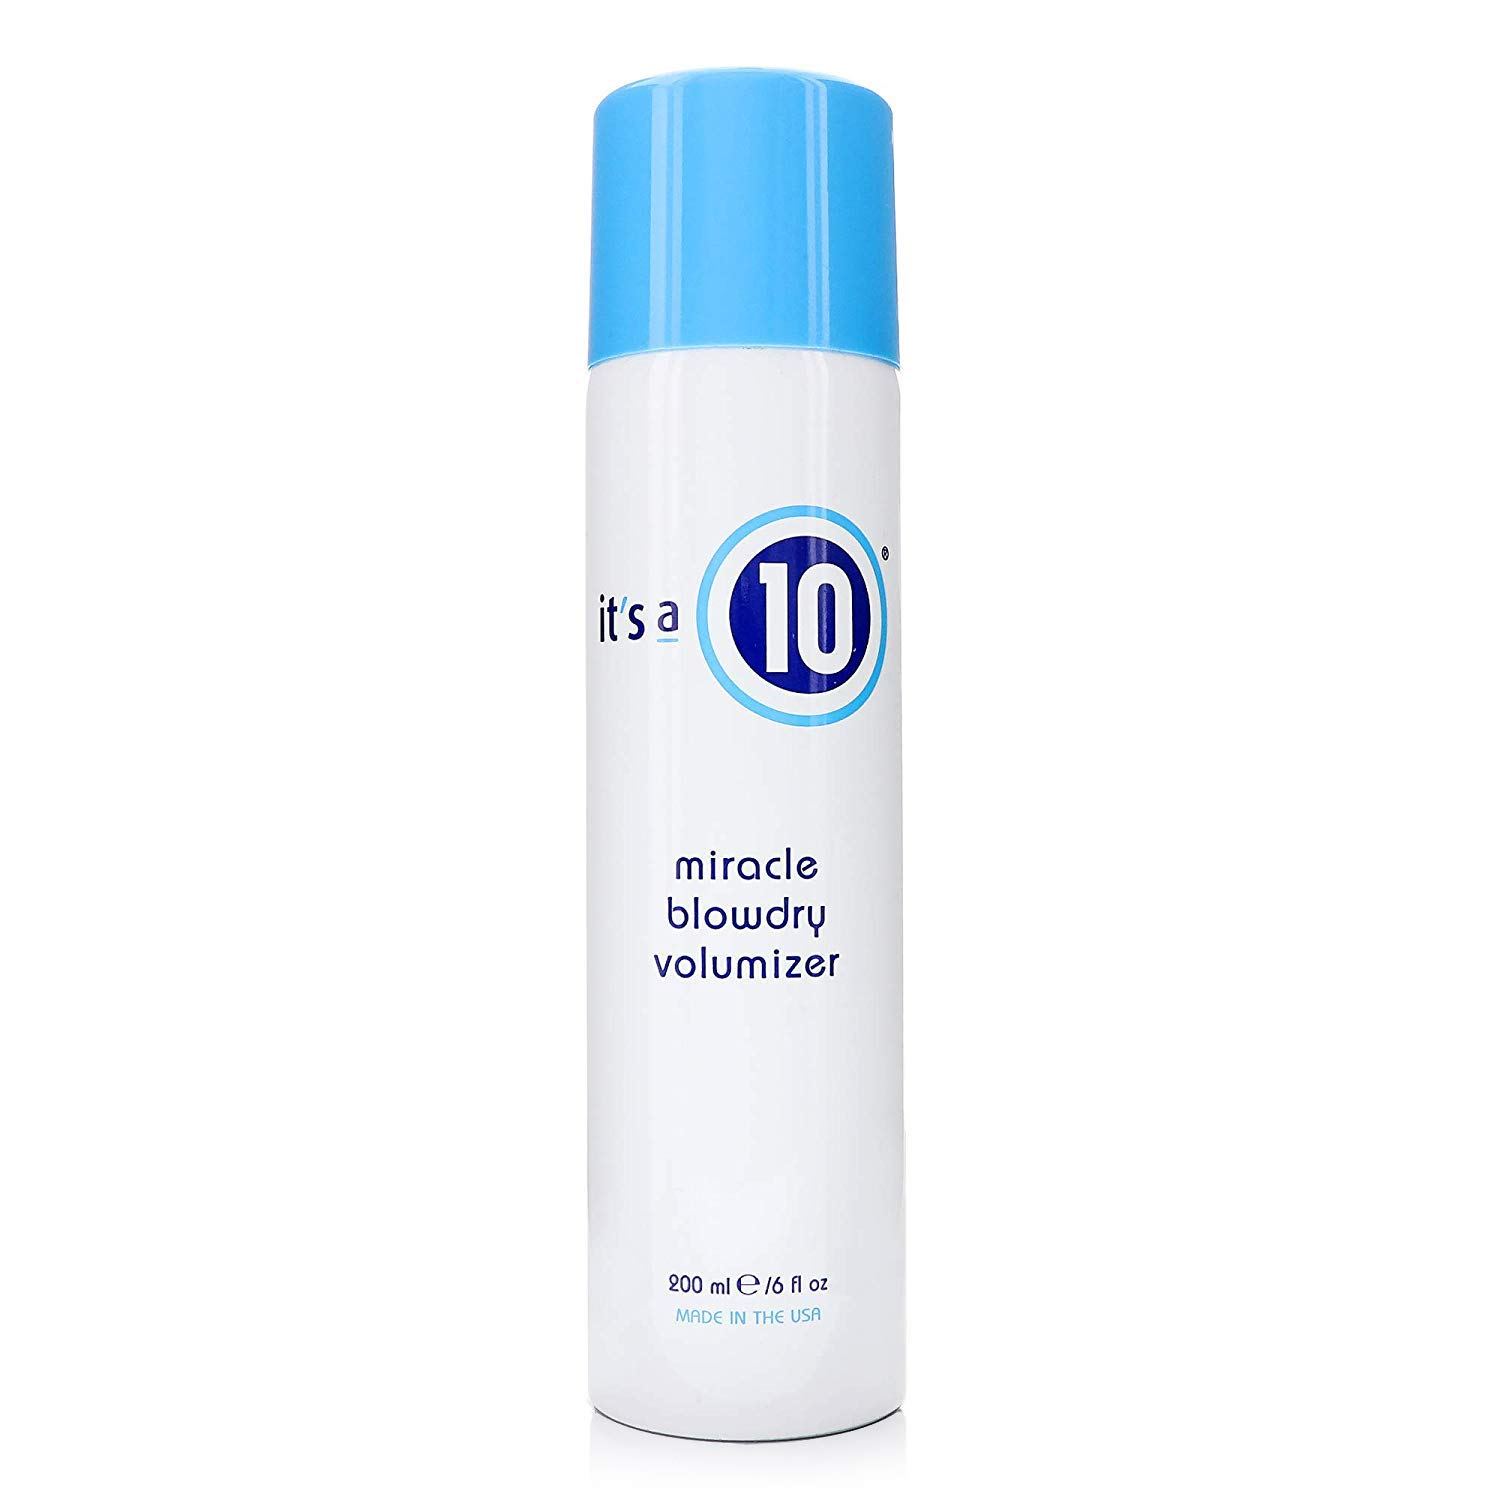 It's a 10 Haircare Miracle Blowdry Volumizer, 6 fl. oz.